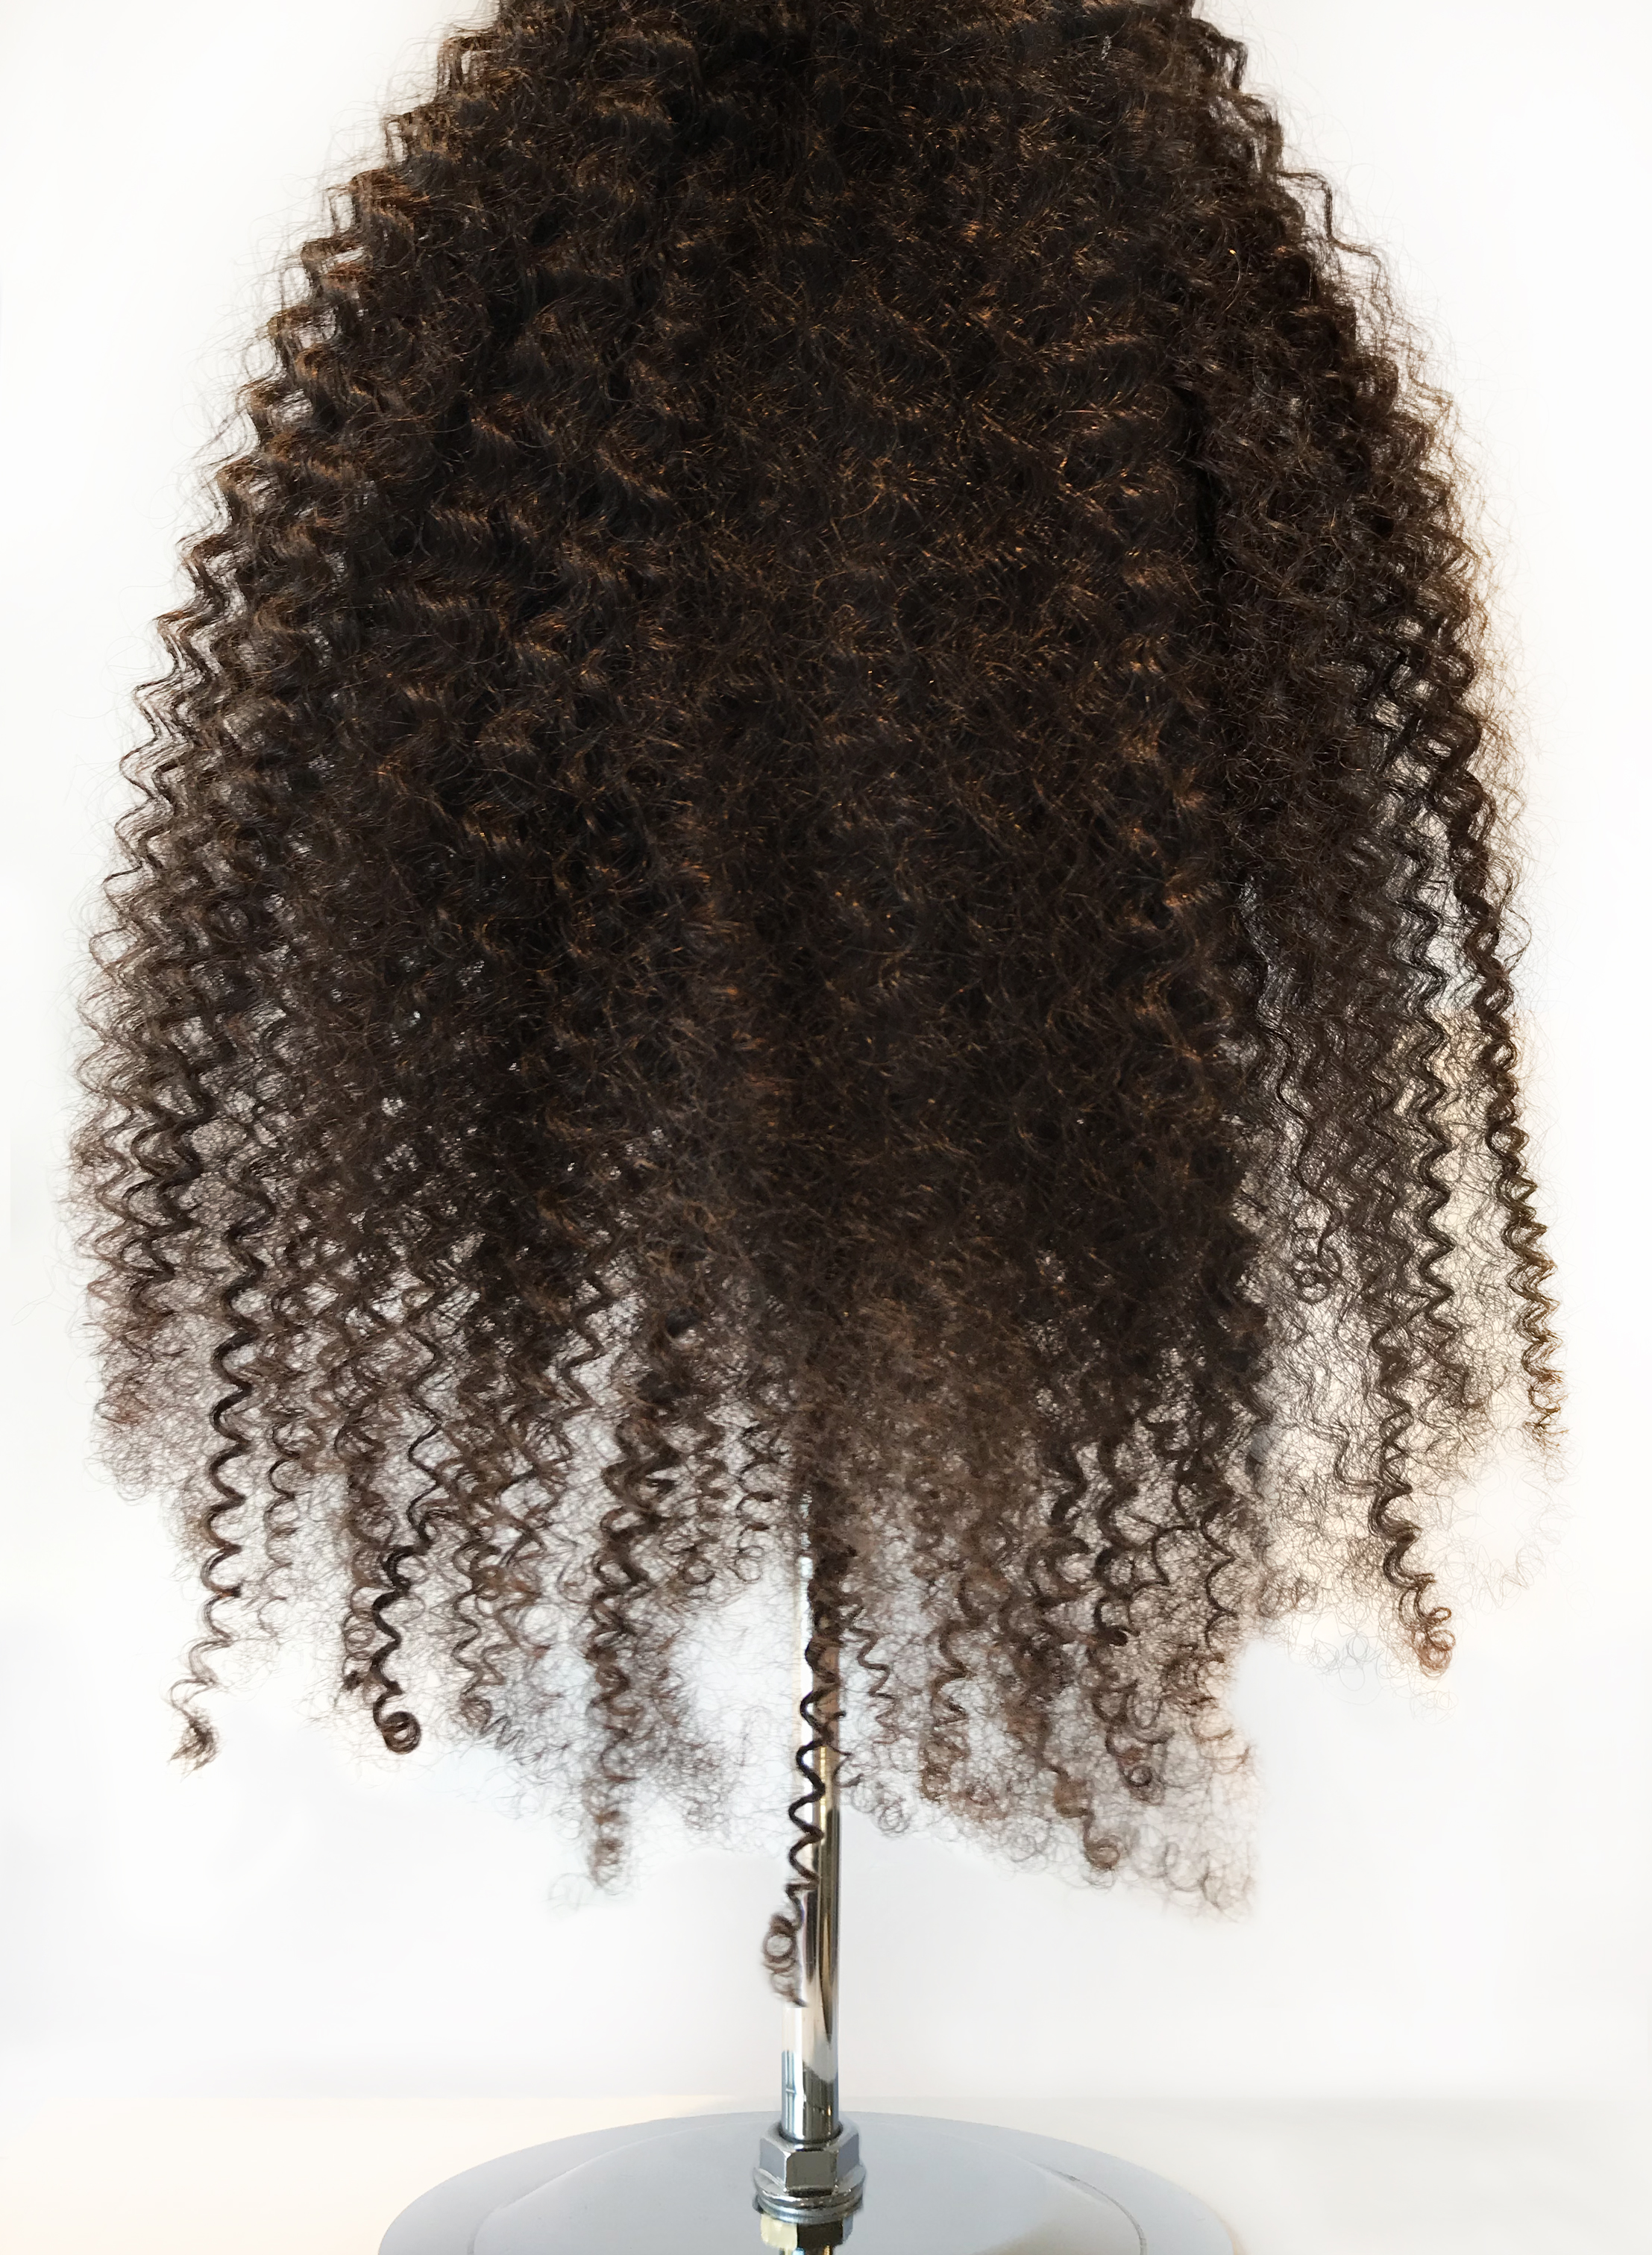 This is our coolest and tightest curl yet is the match made in heaven for the natural who needs a protective style or anyone who wants to try something new. With great care comes great hair so follow the steps below to maintain the shine, fullness and coil of this amazing hair!